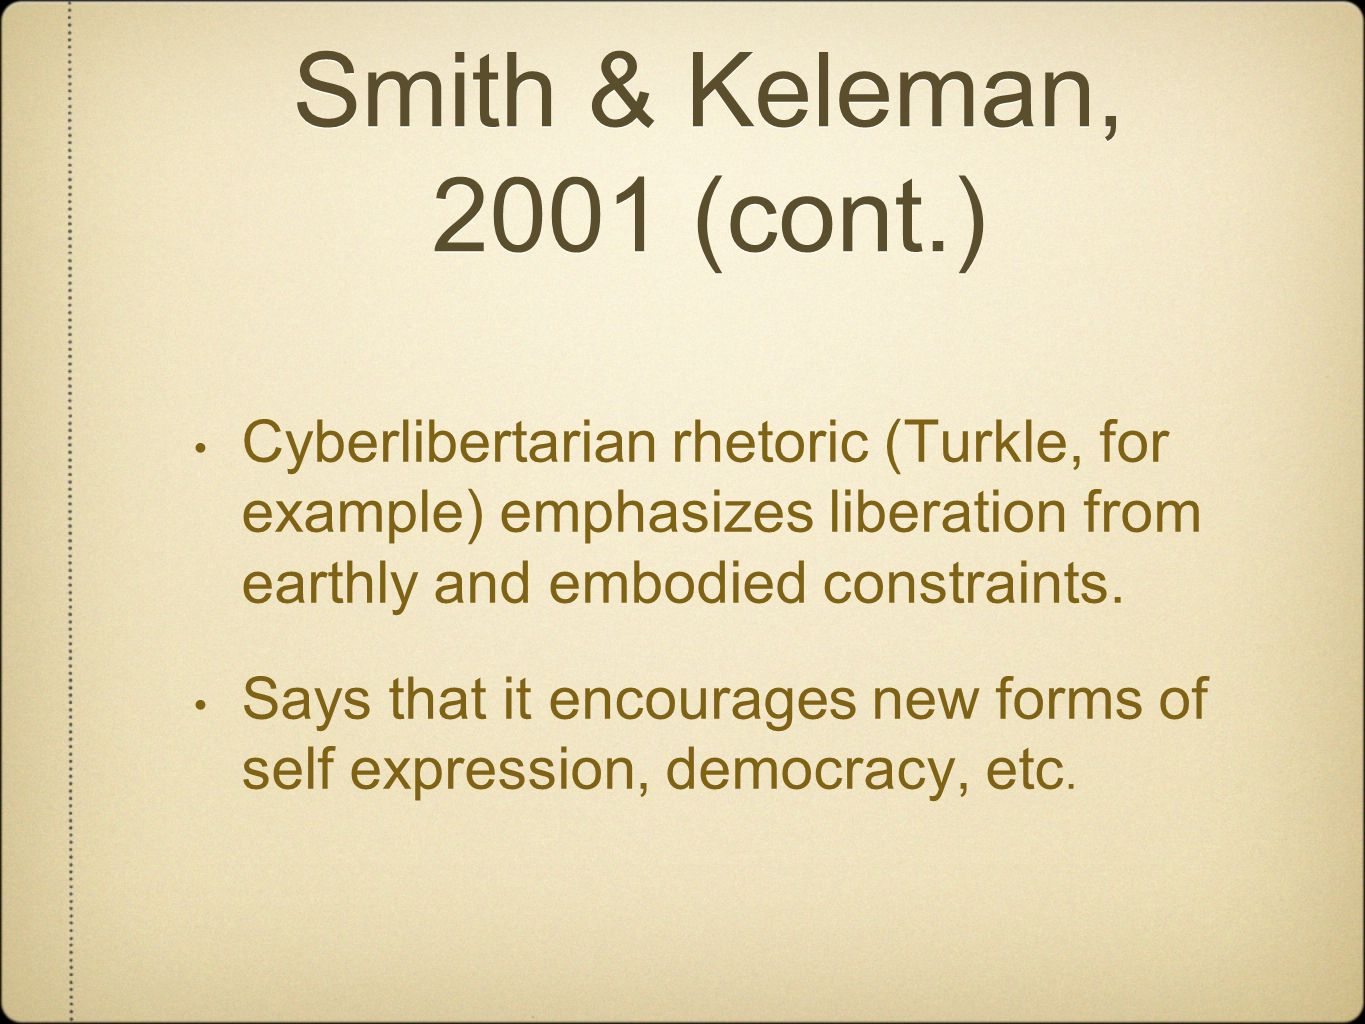 Smith & Keleman, 2001 (cont.) Cyberlibertarian rhetoric (Turkle, for example) emphasizes liberation from earthly and embodied constraints.